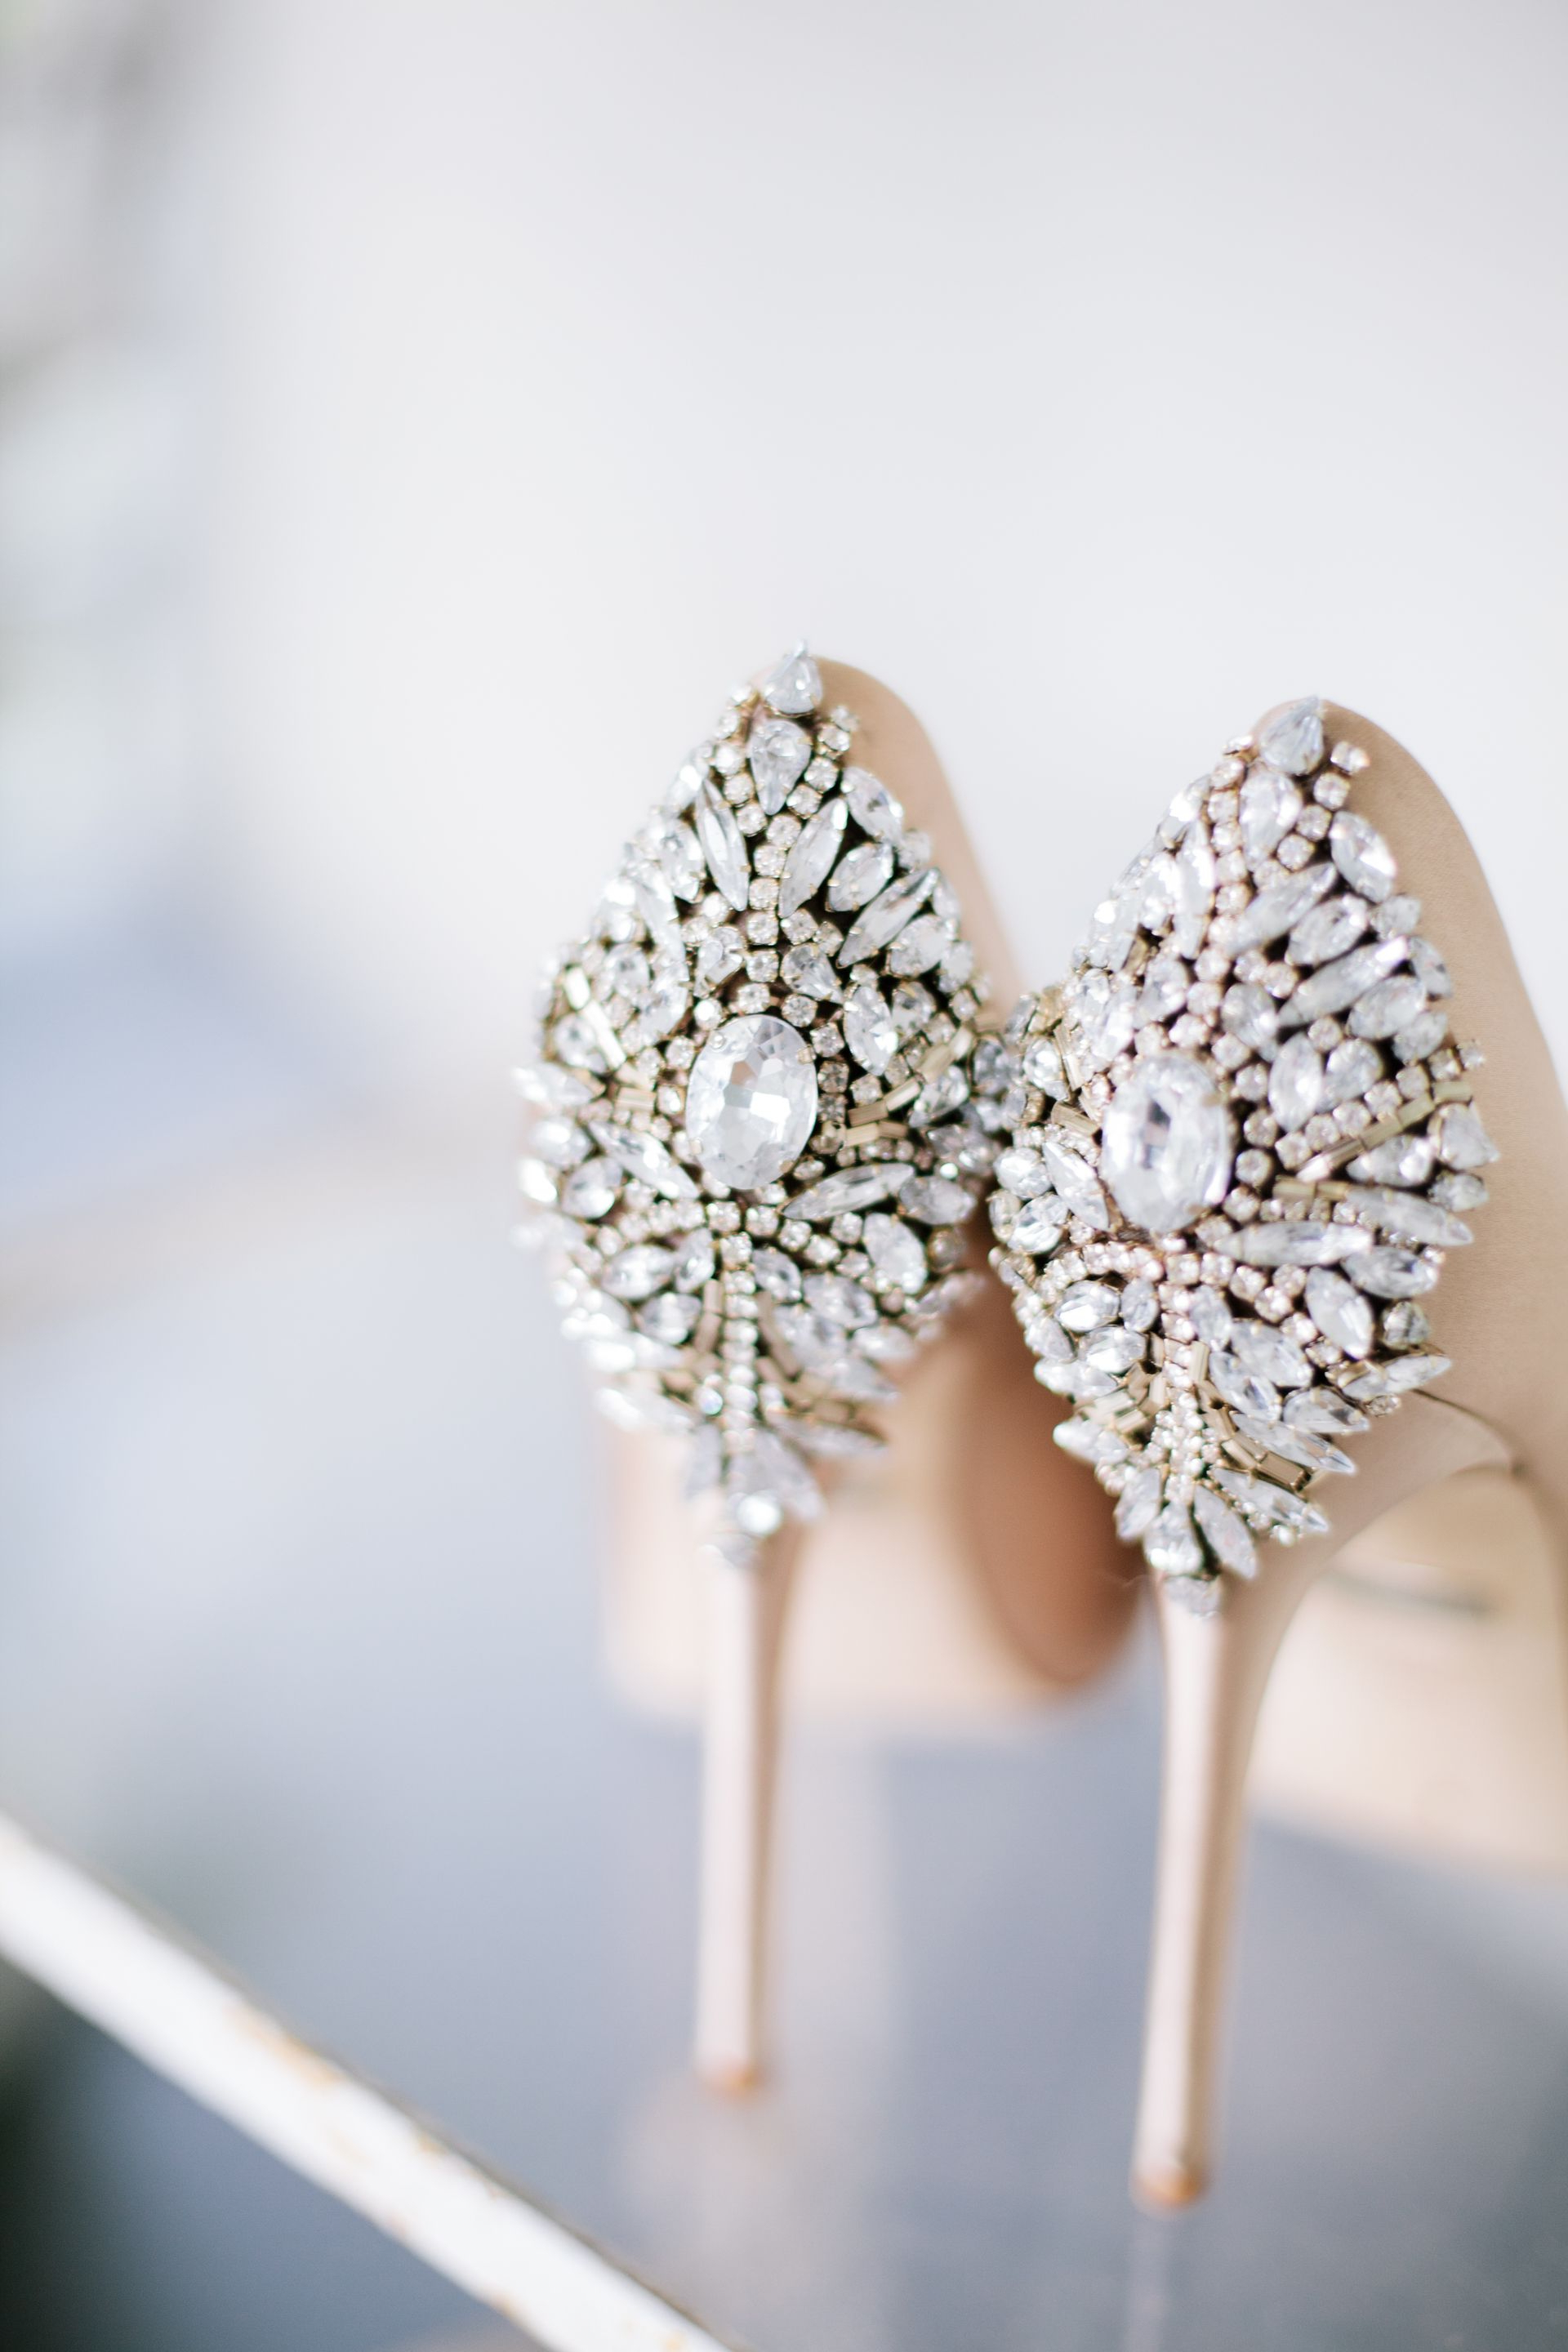 Glam Wedding Shoes, Jewel Encrusted Heels, Bedazzled Bridal Shoes Inside Popular Bedazzled Chic Hairstyles For Wedding (Gallery 11 of 20)